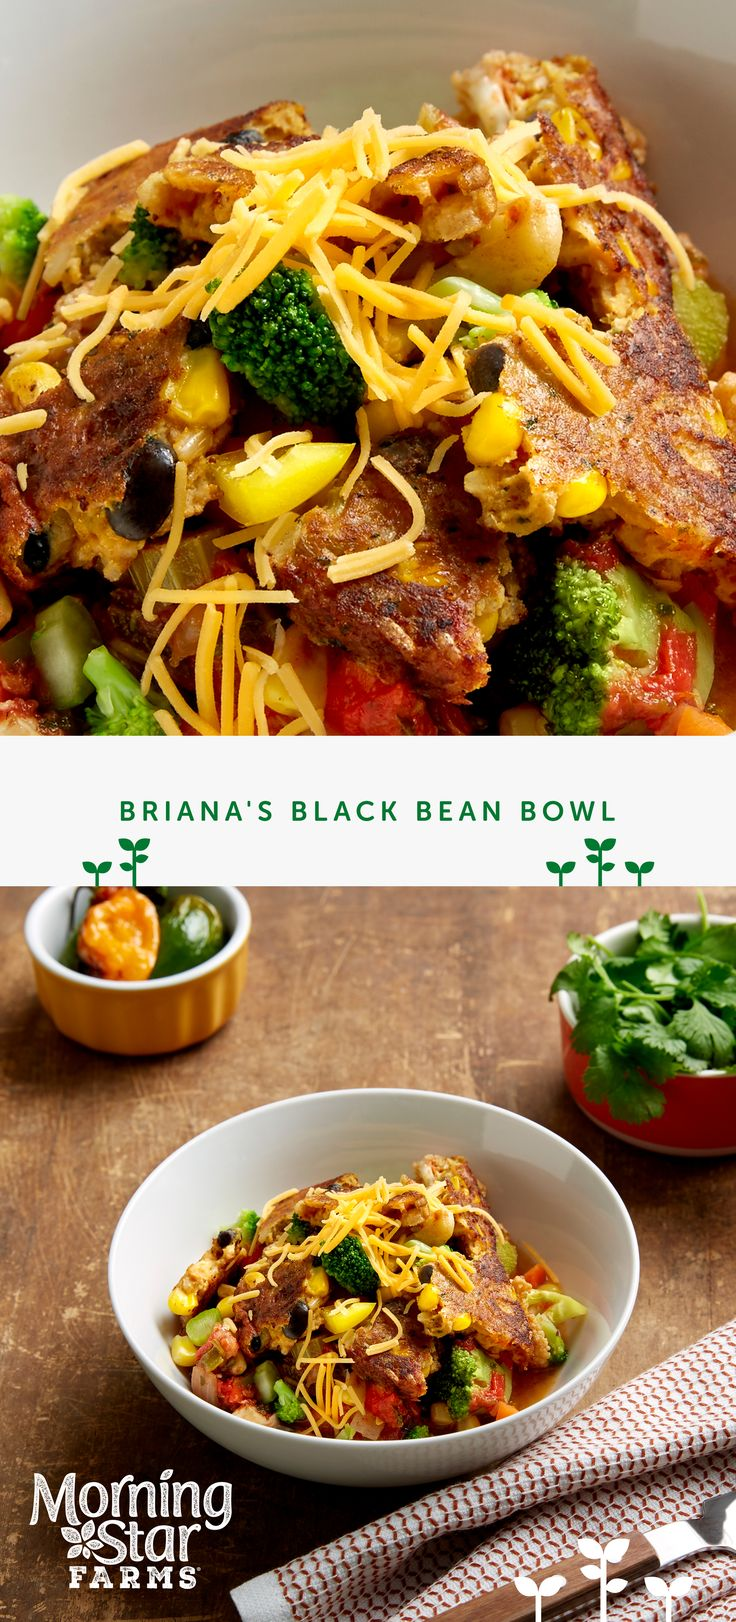 Who knew black beans were so packed with protein? Try pairing them tonight with your favorite veggies in Briana's black bean bowl.